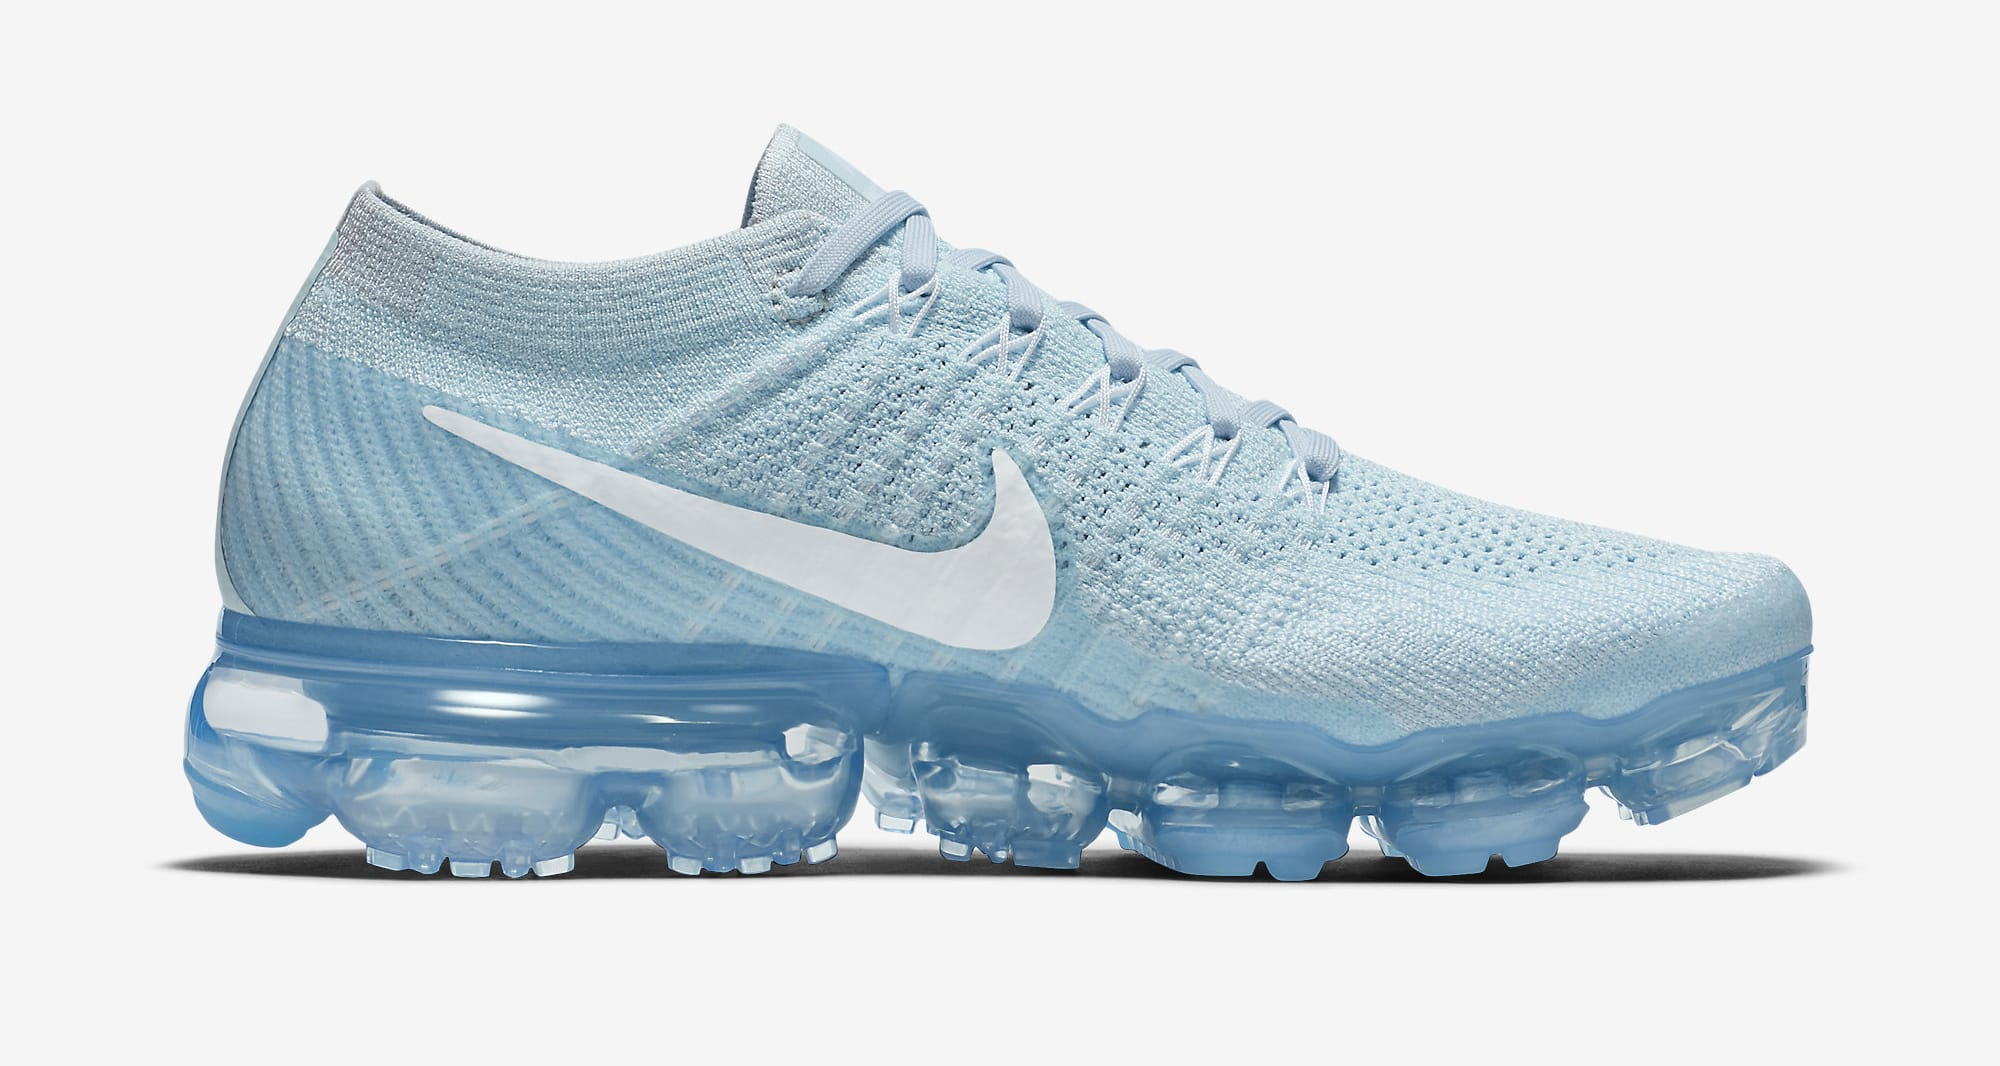 new product d8894 b1a35 Buy Nike Cheap Air Vapormax Flyknit Running Shoes Sale Online 2018